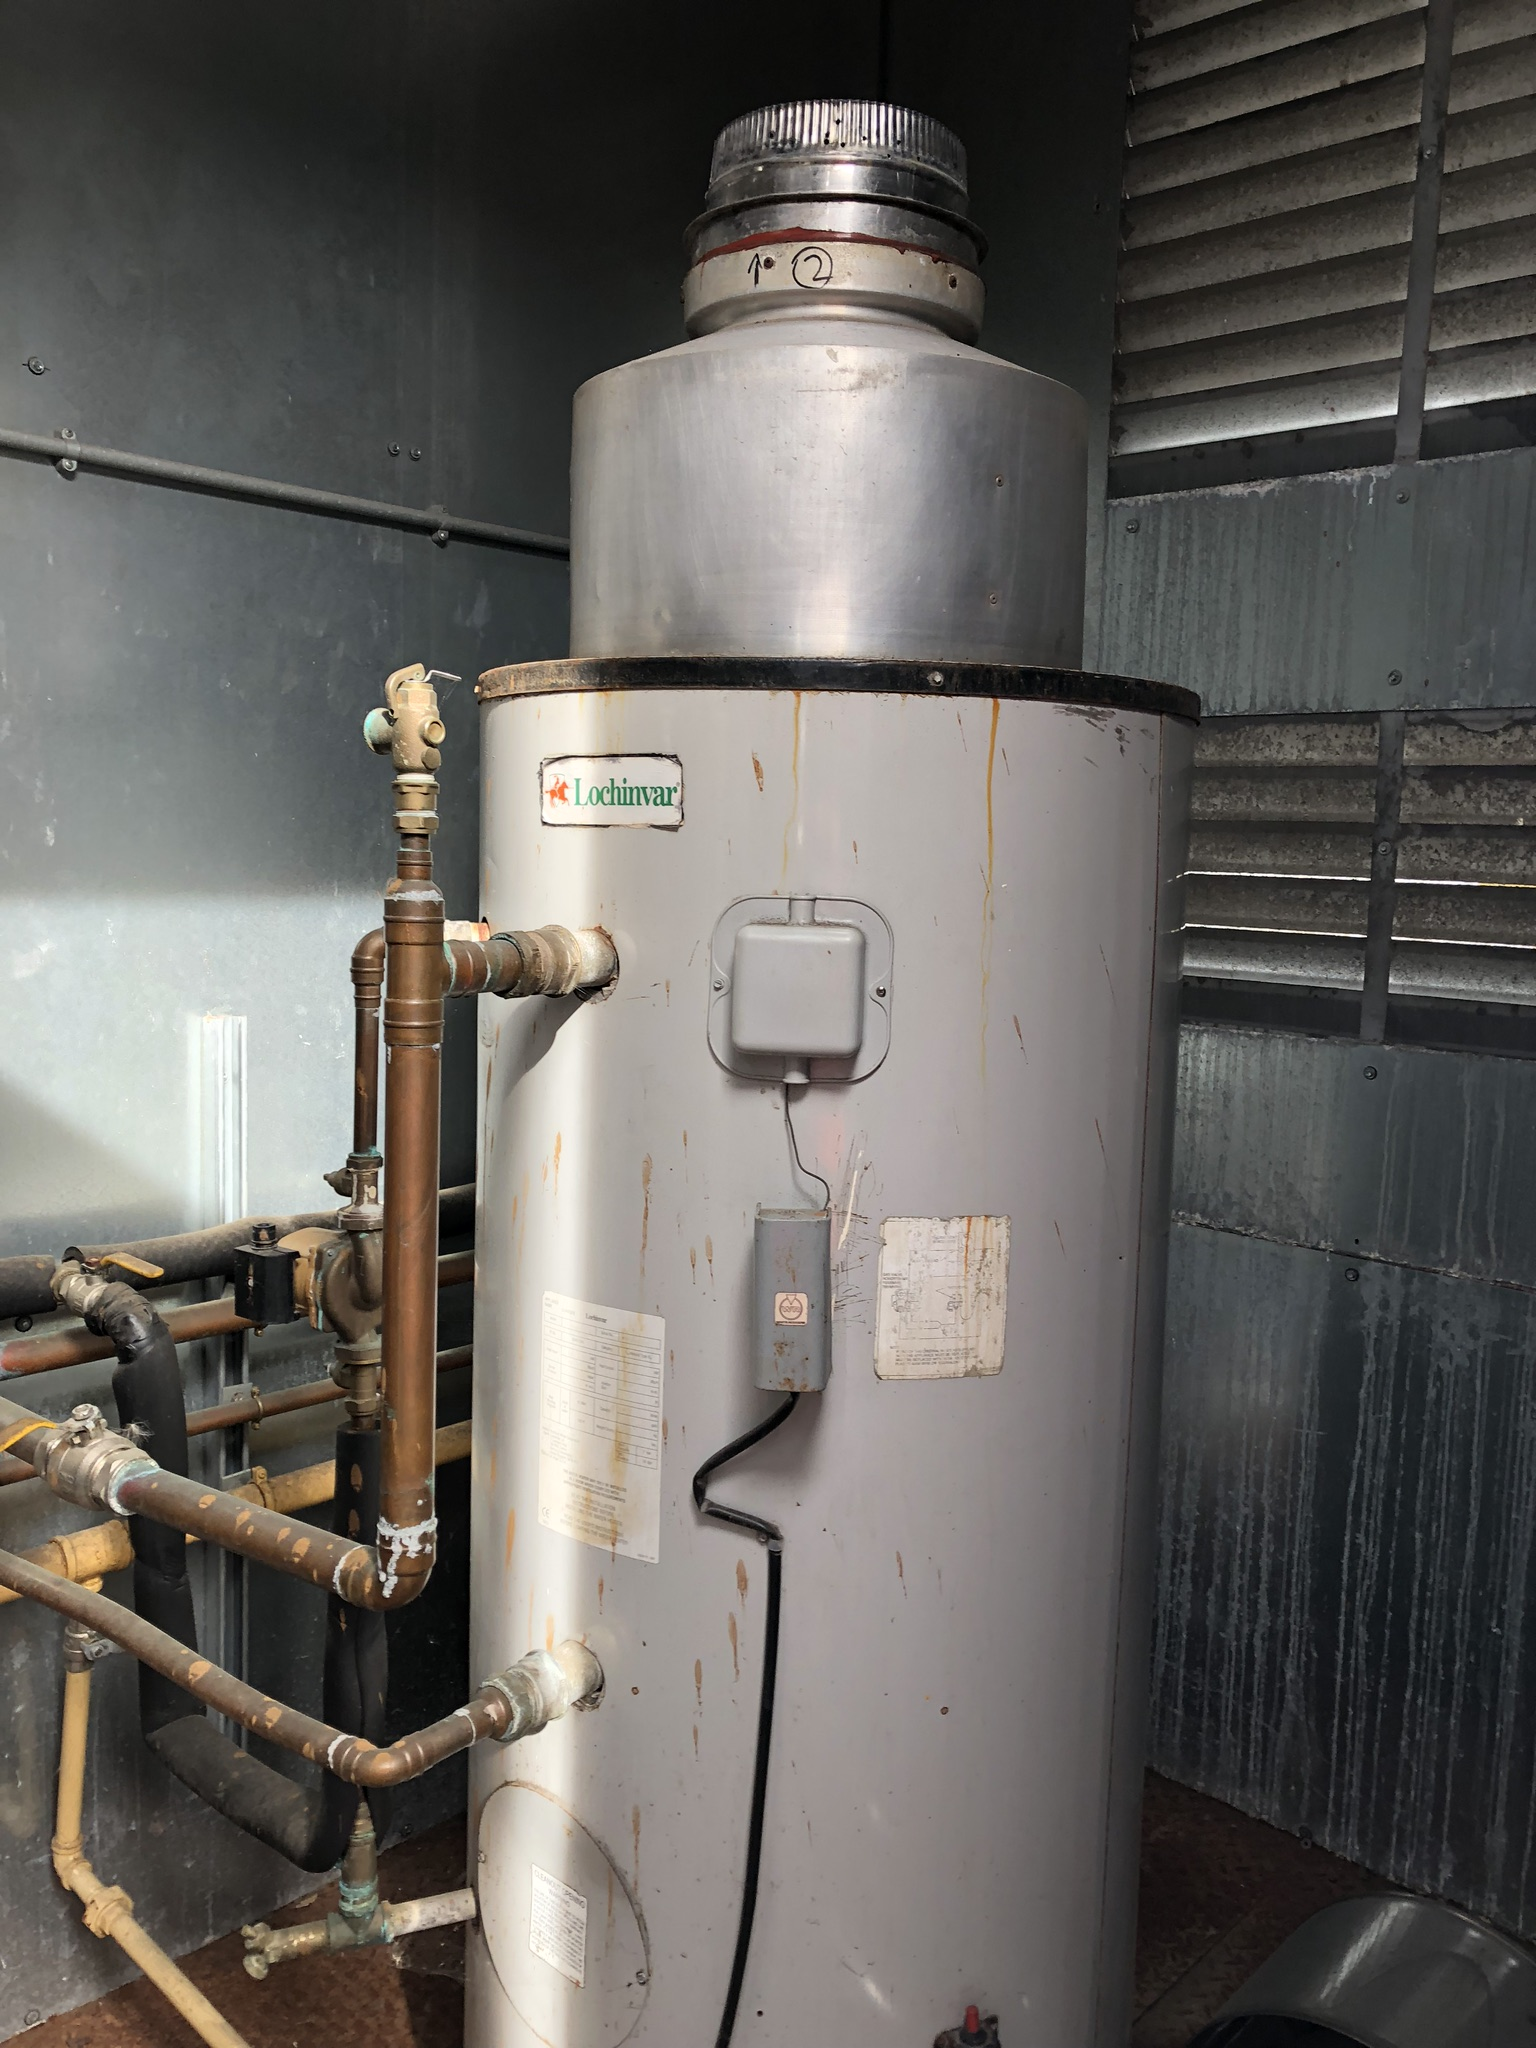 Two Lochnivar Gas Water Heaters, in container, with chimneys, lift out charge - £100 - Image 2 of 7